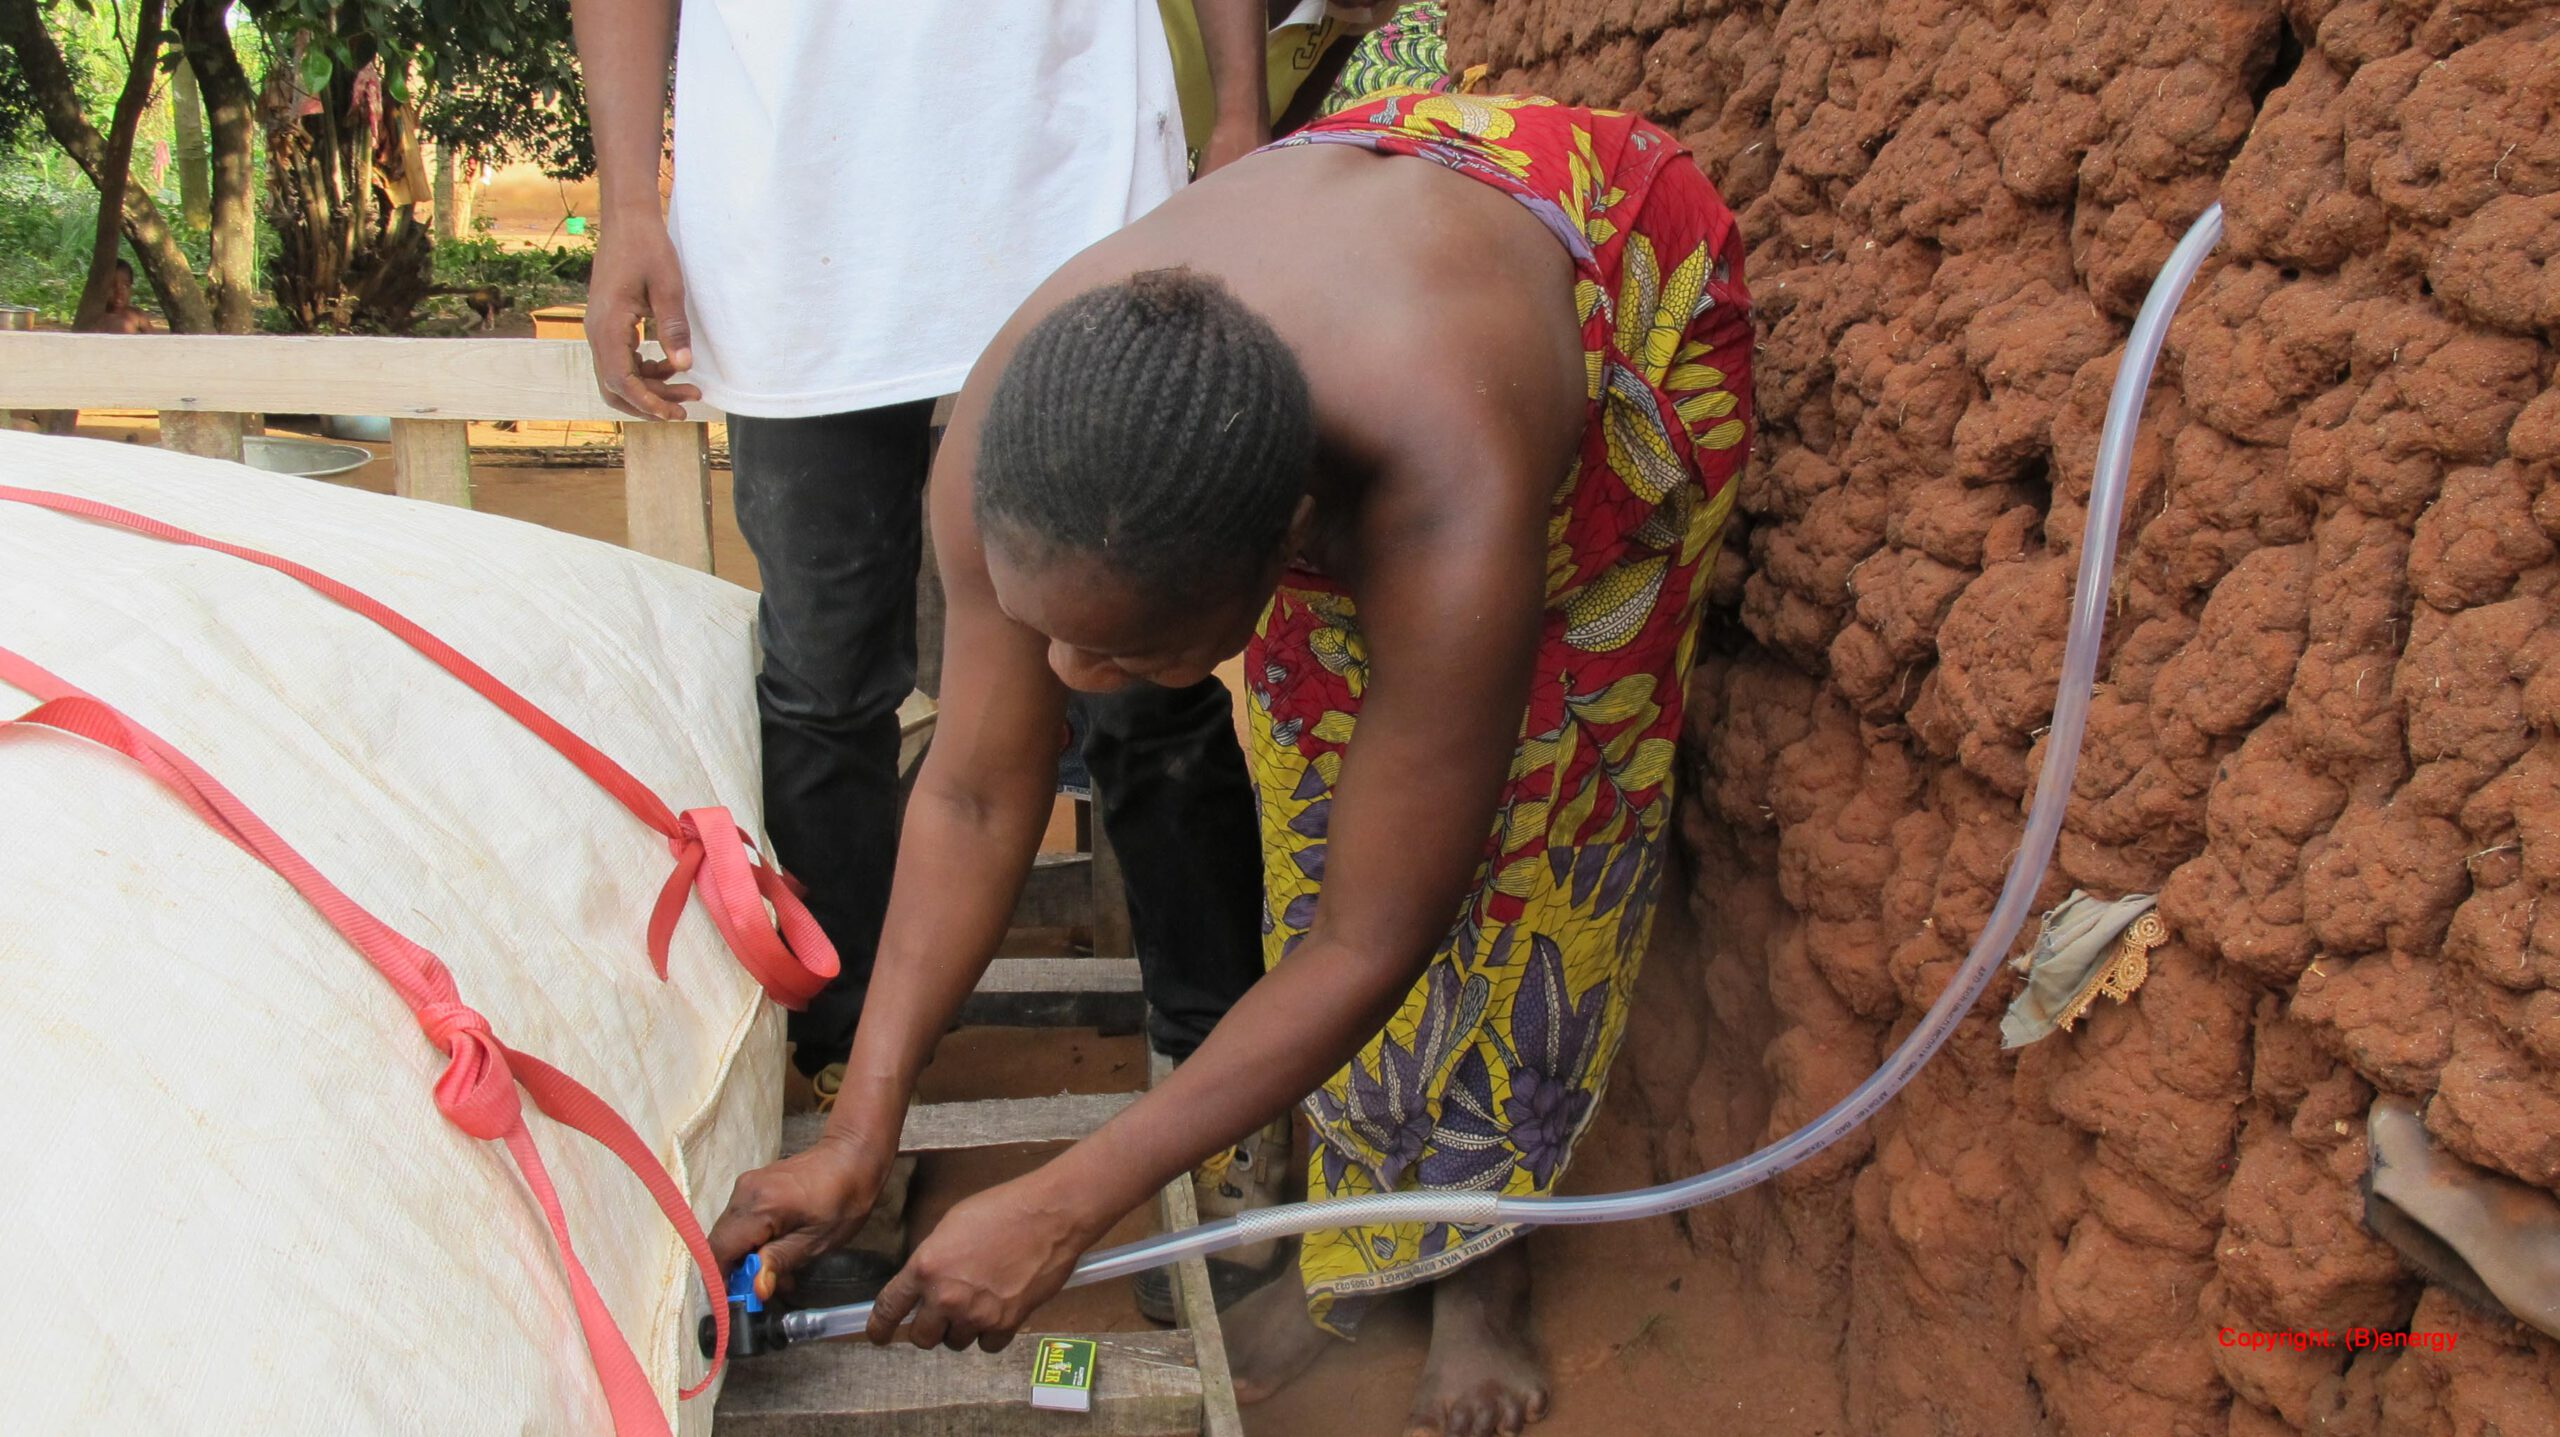 Call for immediate action: no more aid money for the biogas sector in Africa